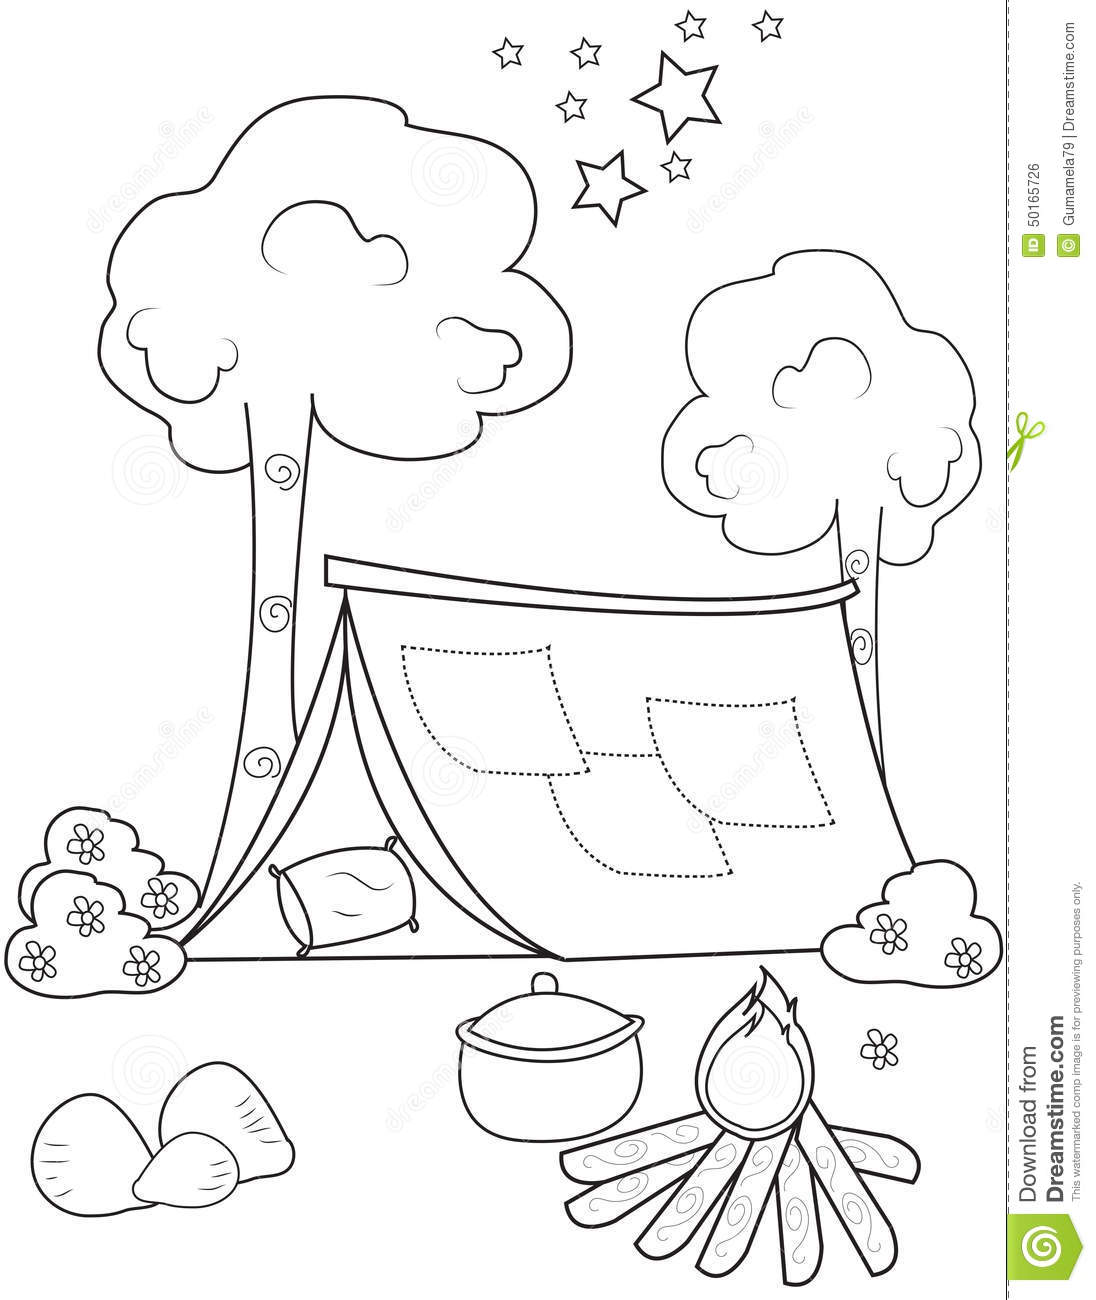 tent coloring page stock illustration